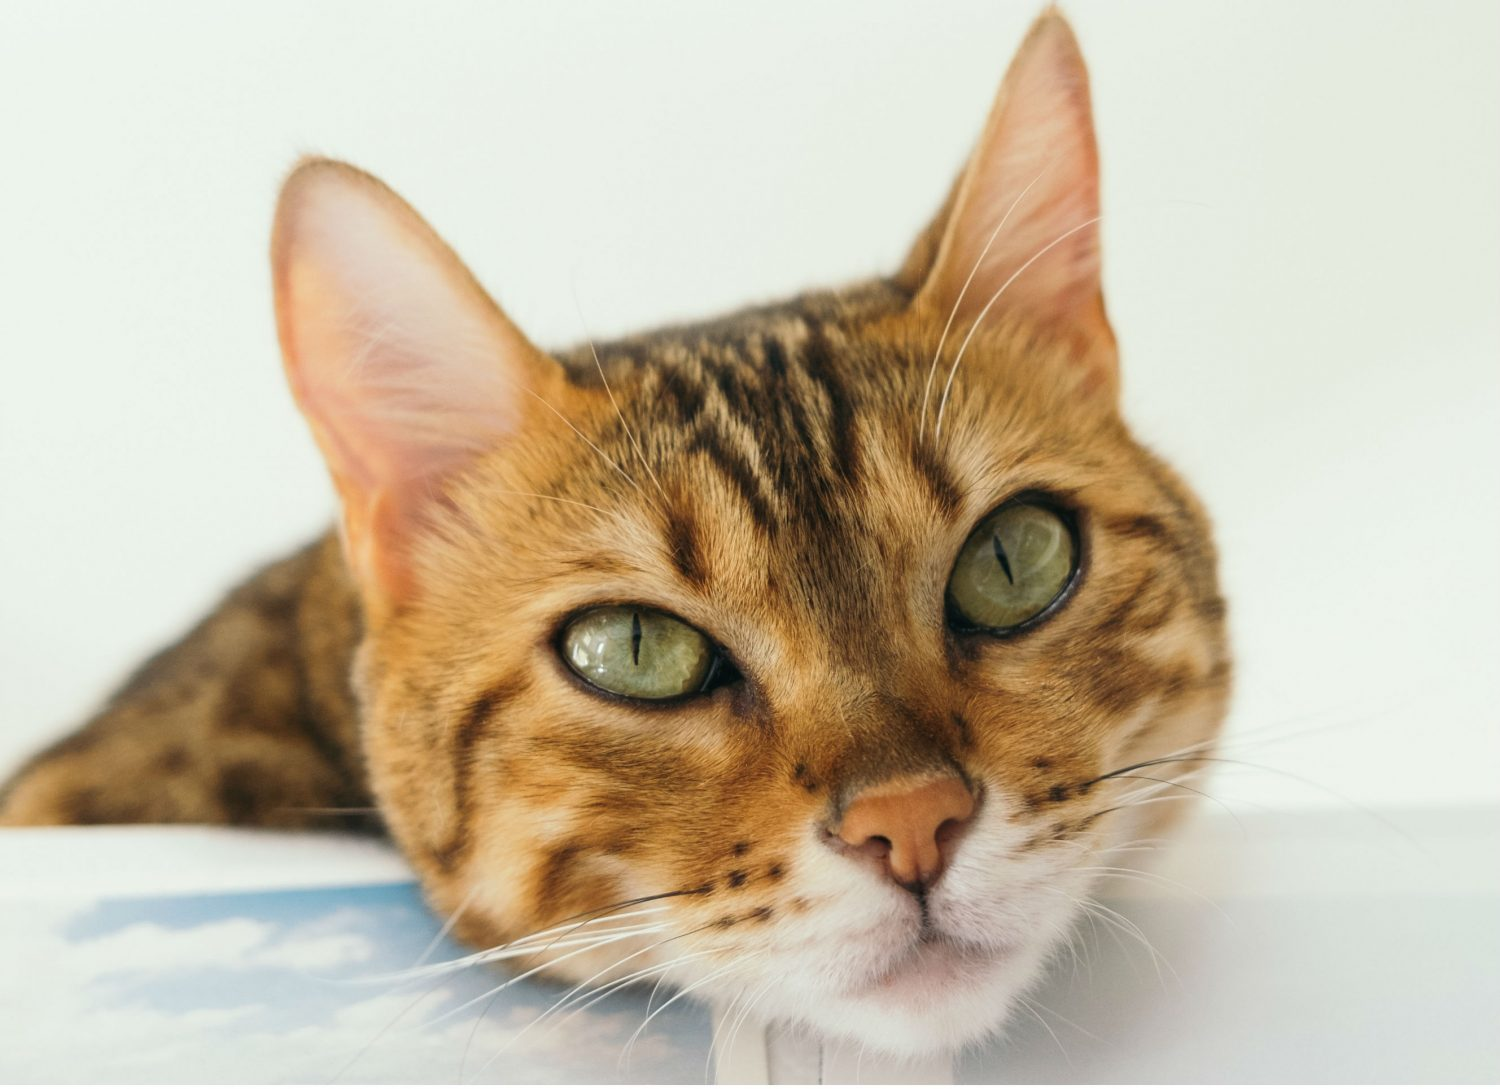 Is sneezing and watery eyes a sign that a cat has allergies and what kind of medication could be given?